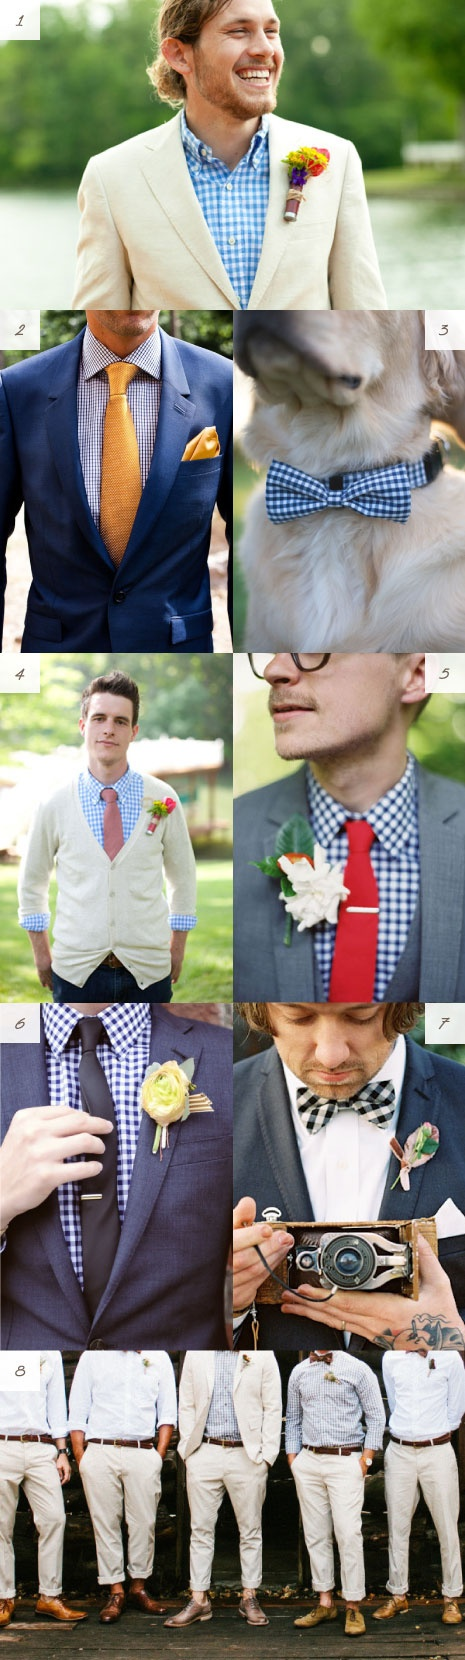 CHRIS (a note for Chris)(hi!): I like the gingham, not everyone needs to be wearing the EXACT same thing is there is a noticeable common element.